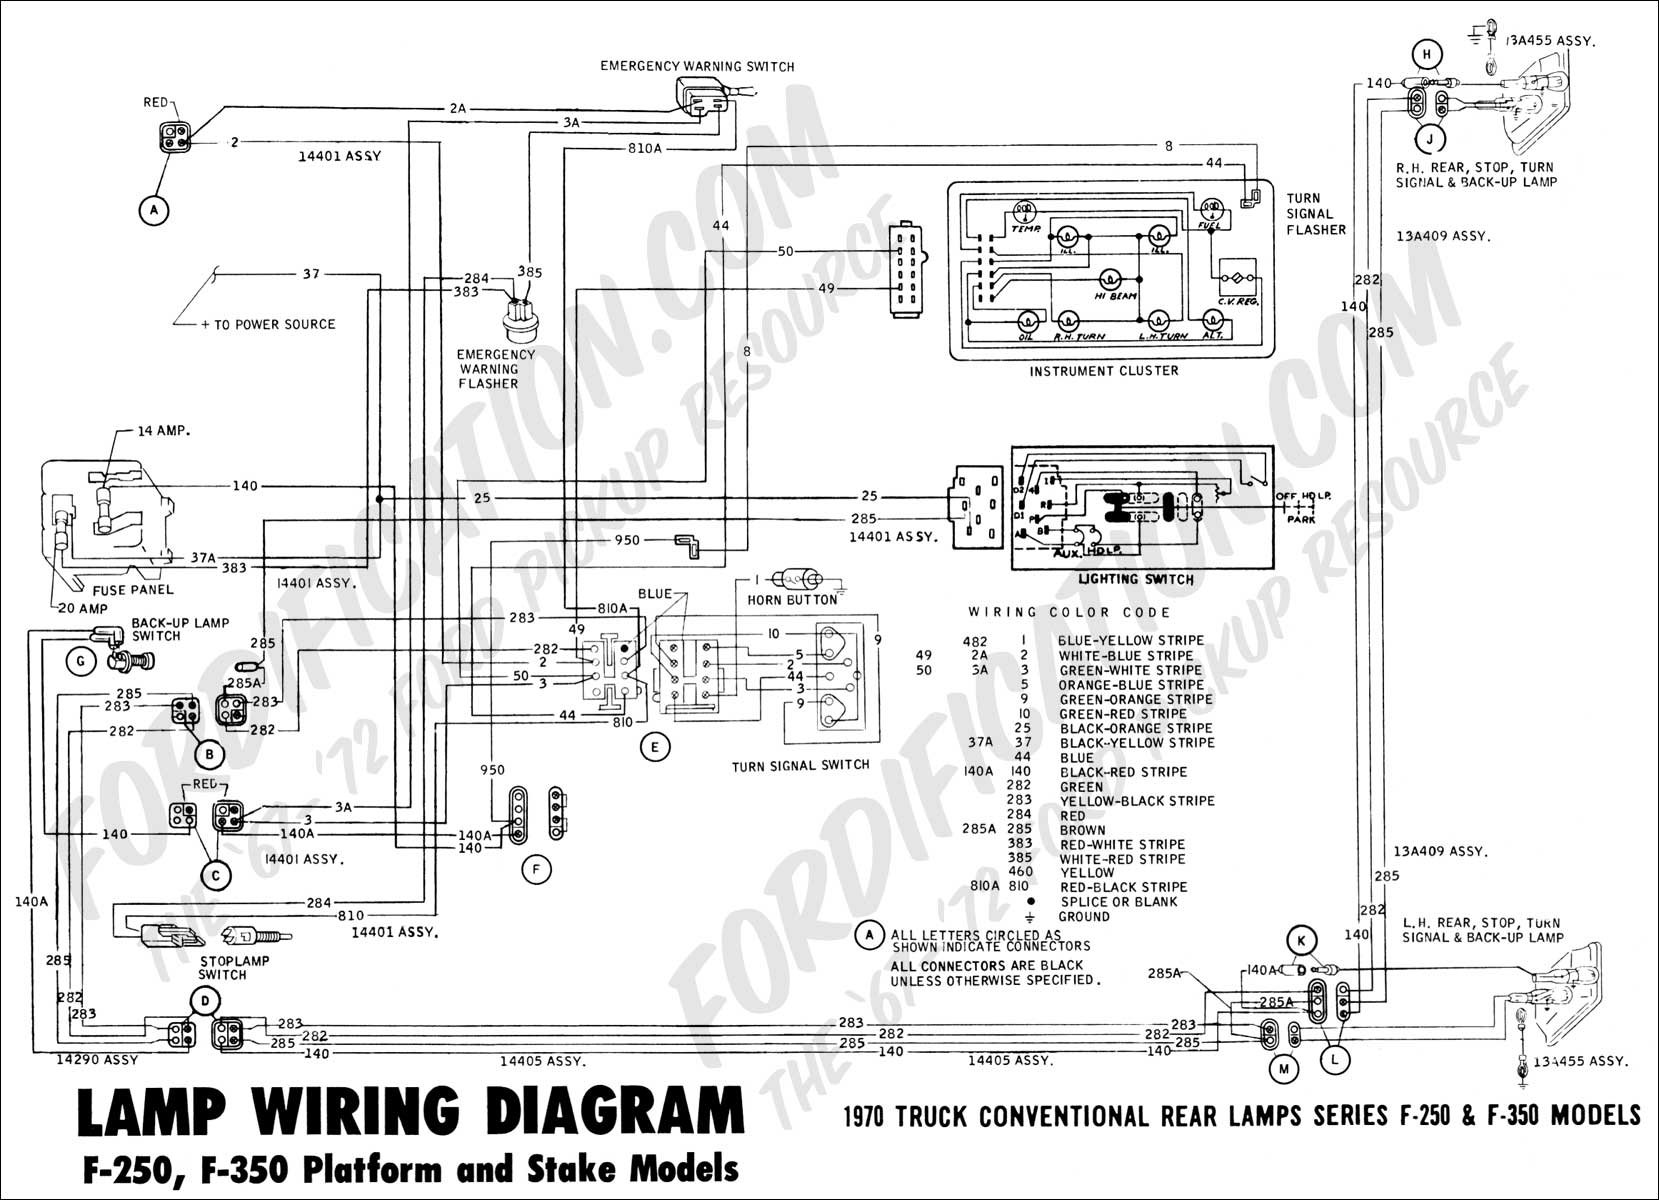 Ford F250 Wiring Diagram Schemes 01 Dodge Truck Technical Drawings And Schematics Section H Fairlane 1970 F 250